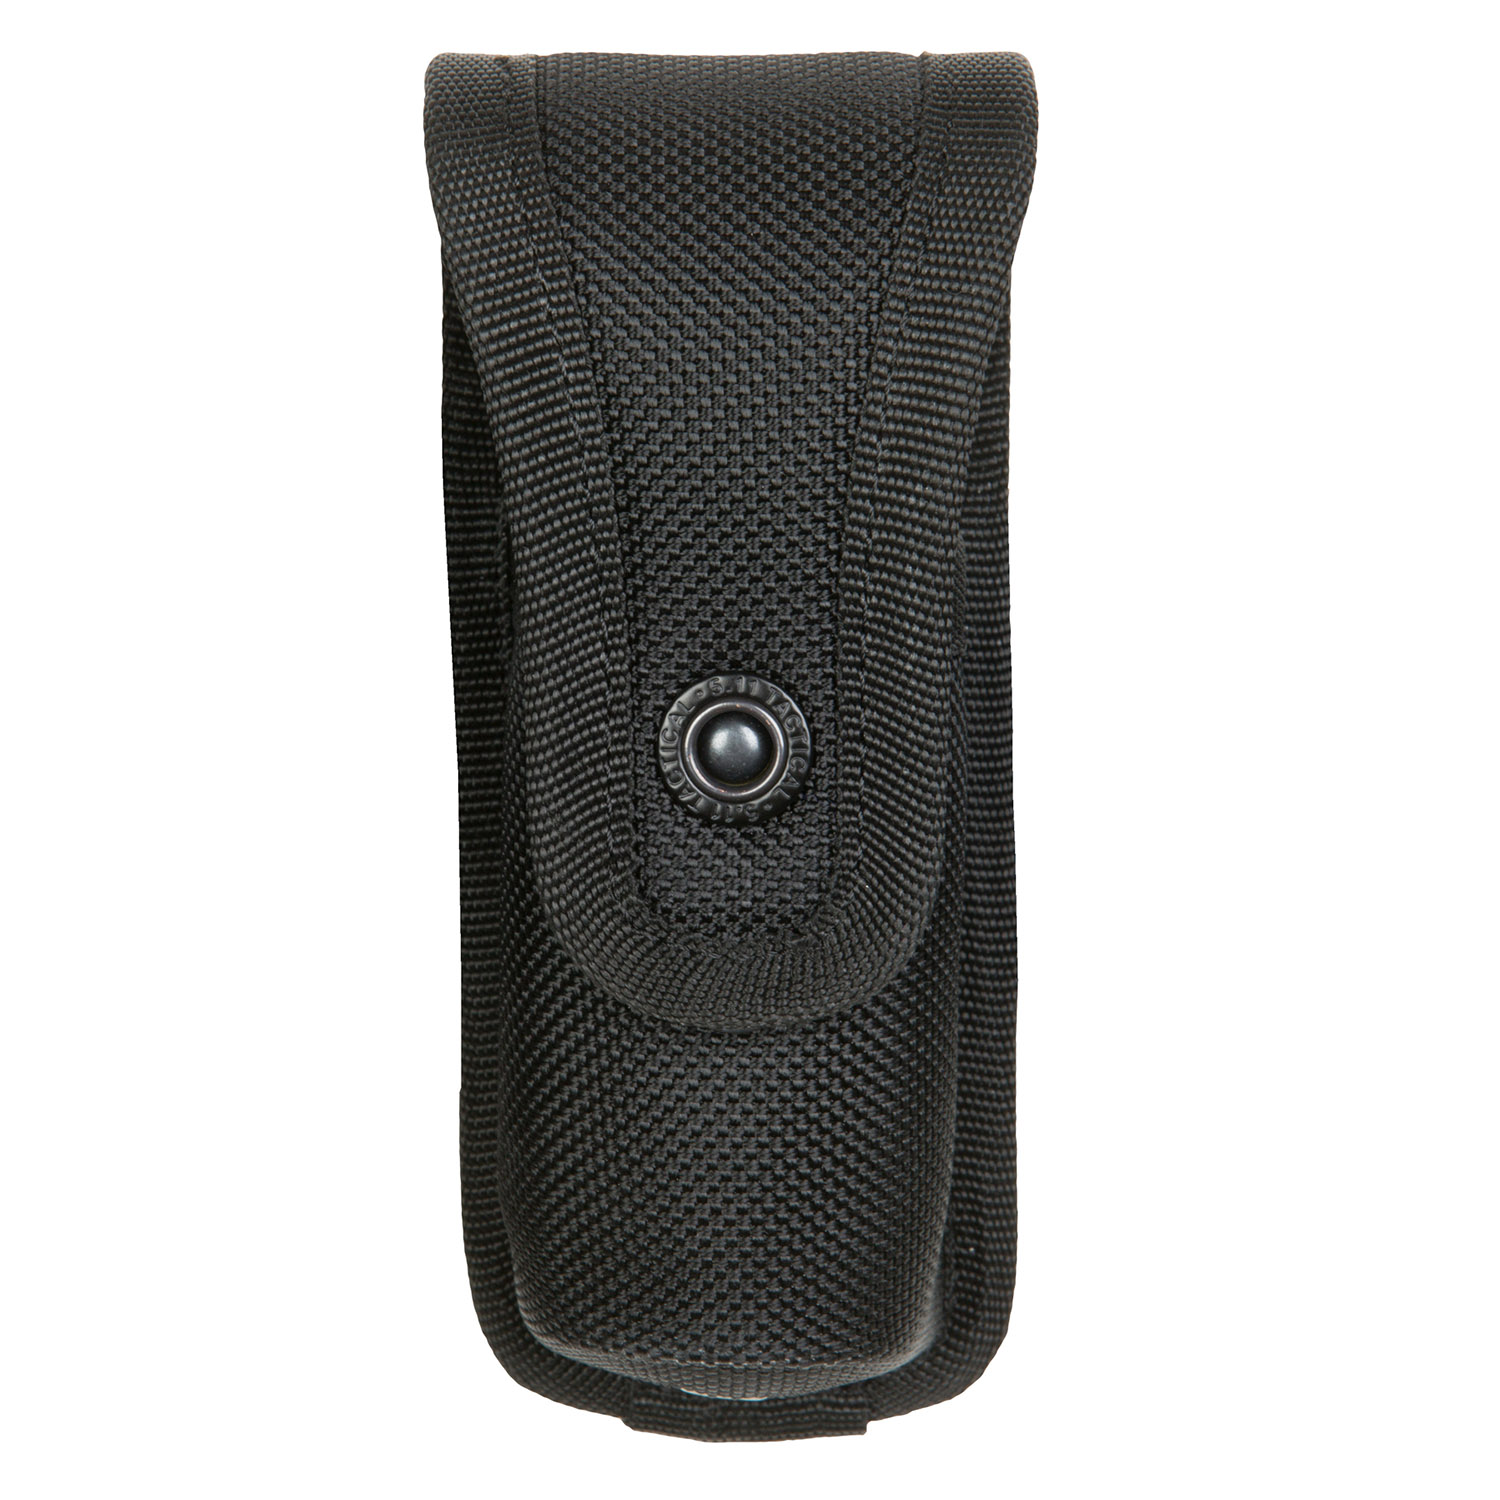 5.11 Tactical Sierra Bravo Defense Spray Pouch